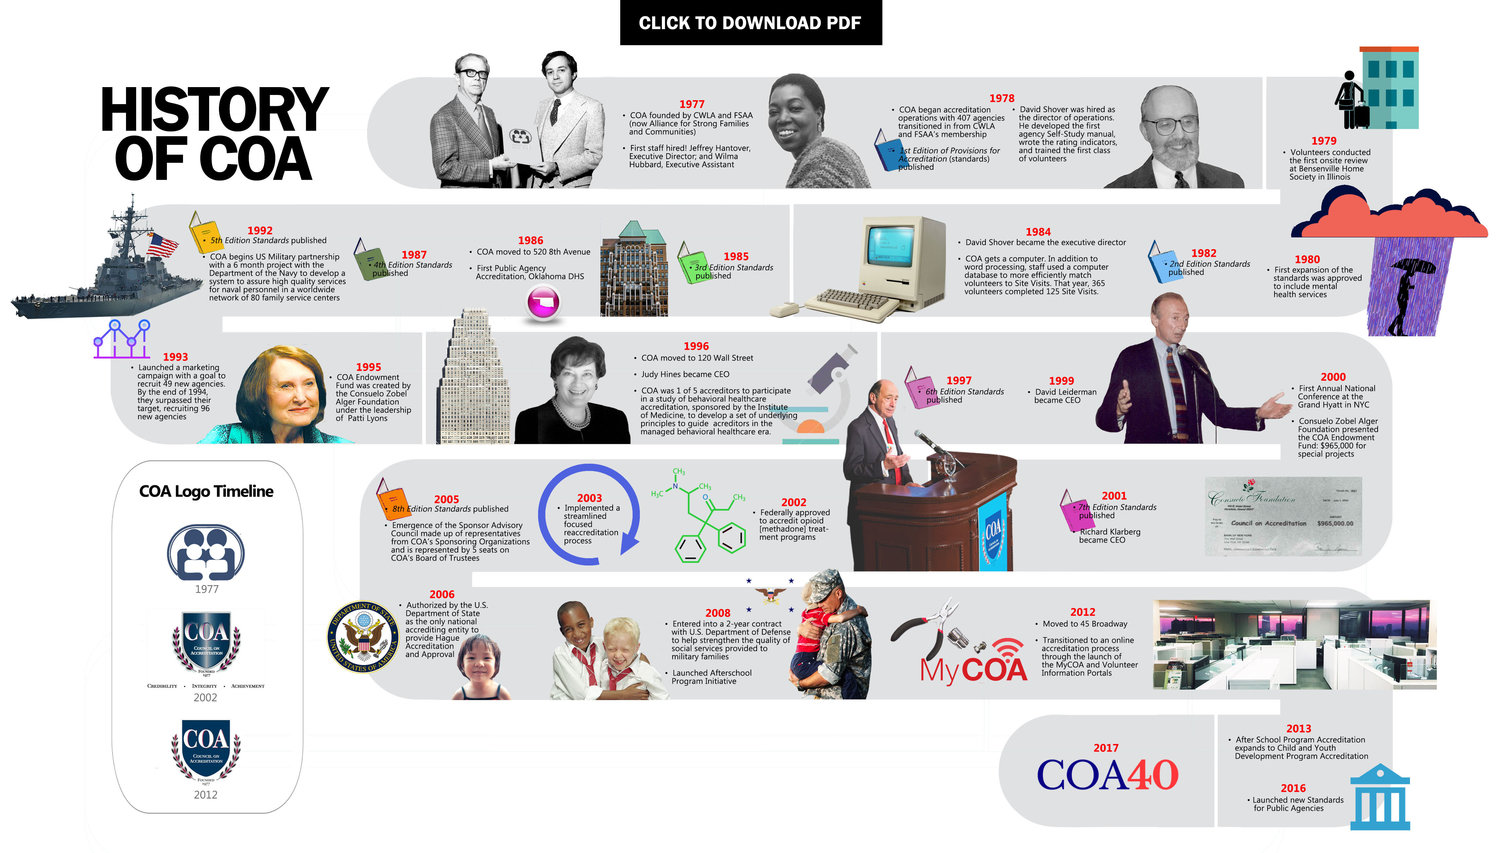 Infographic by Emily Brush; Visual History of COA PDF